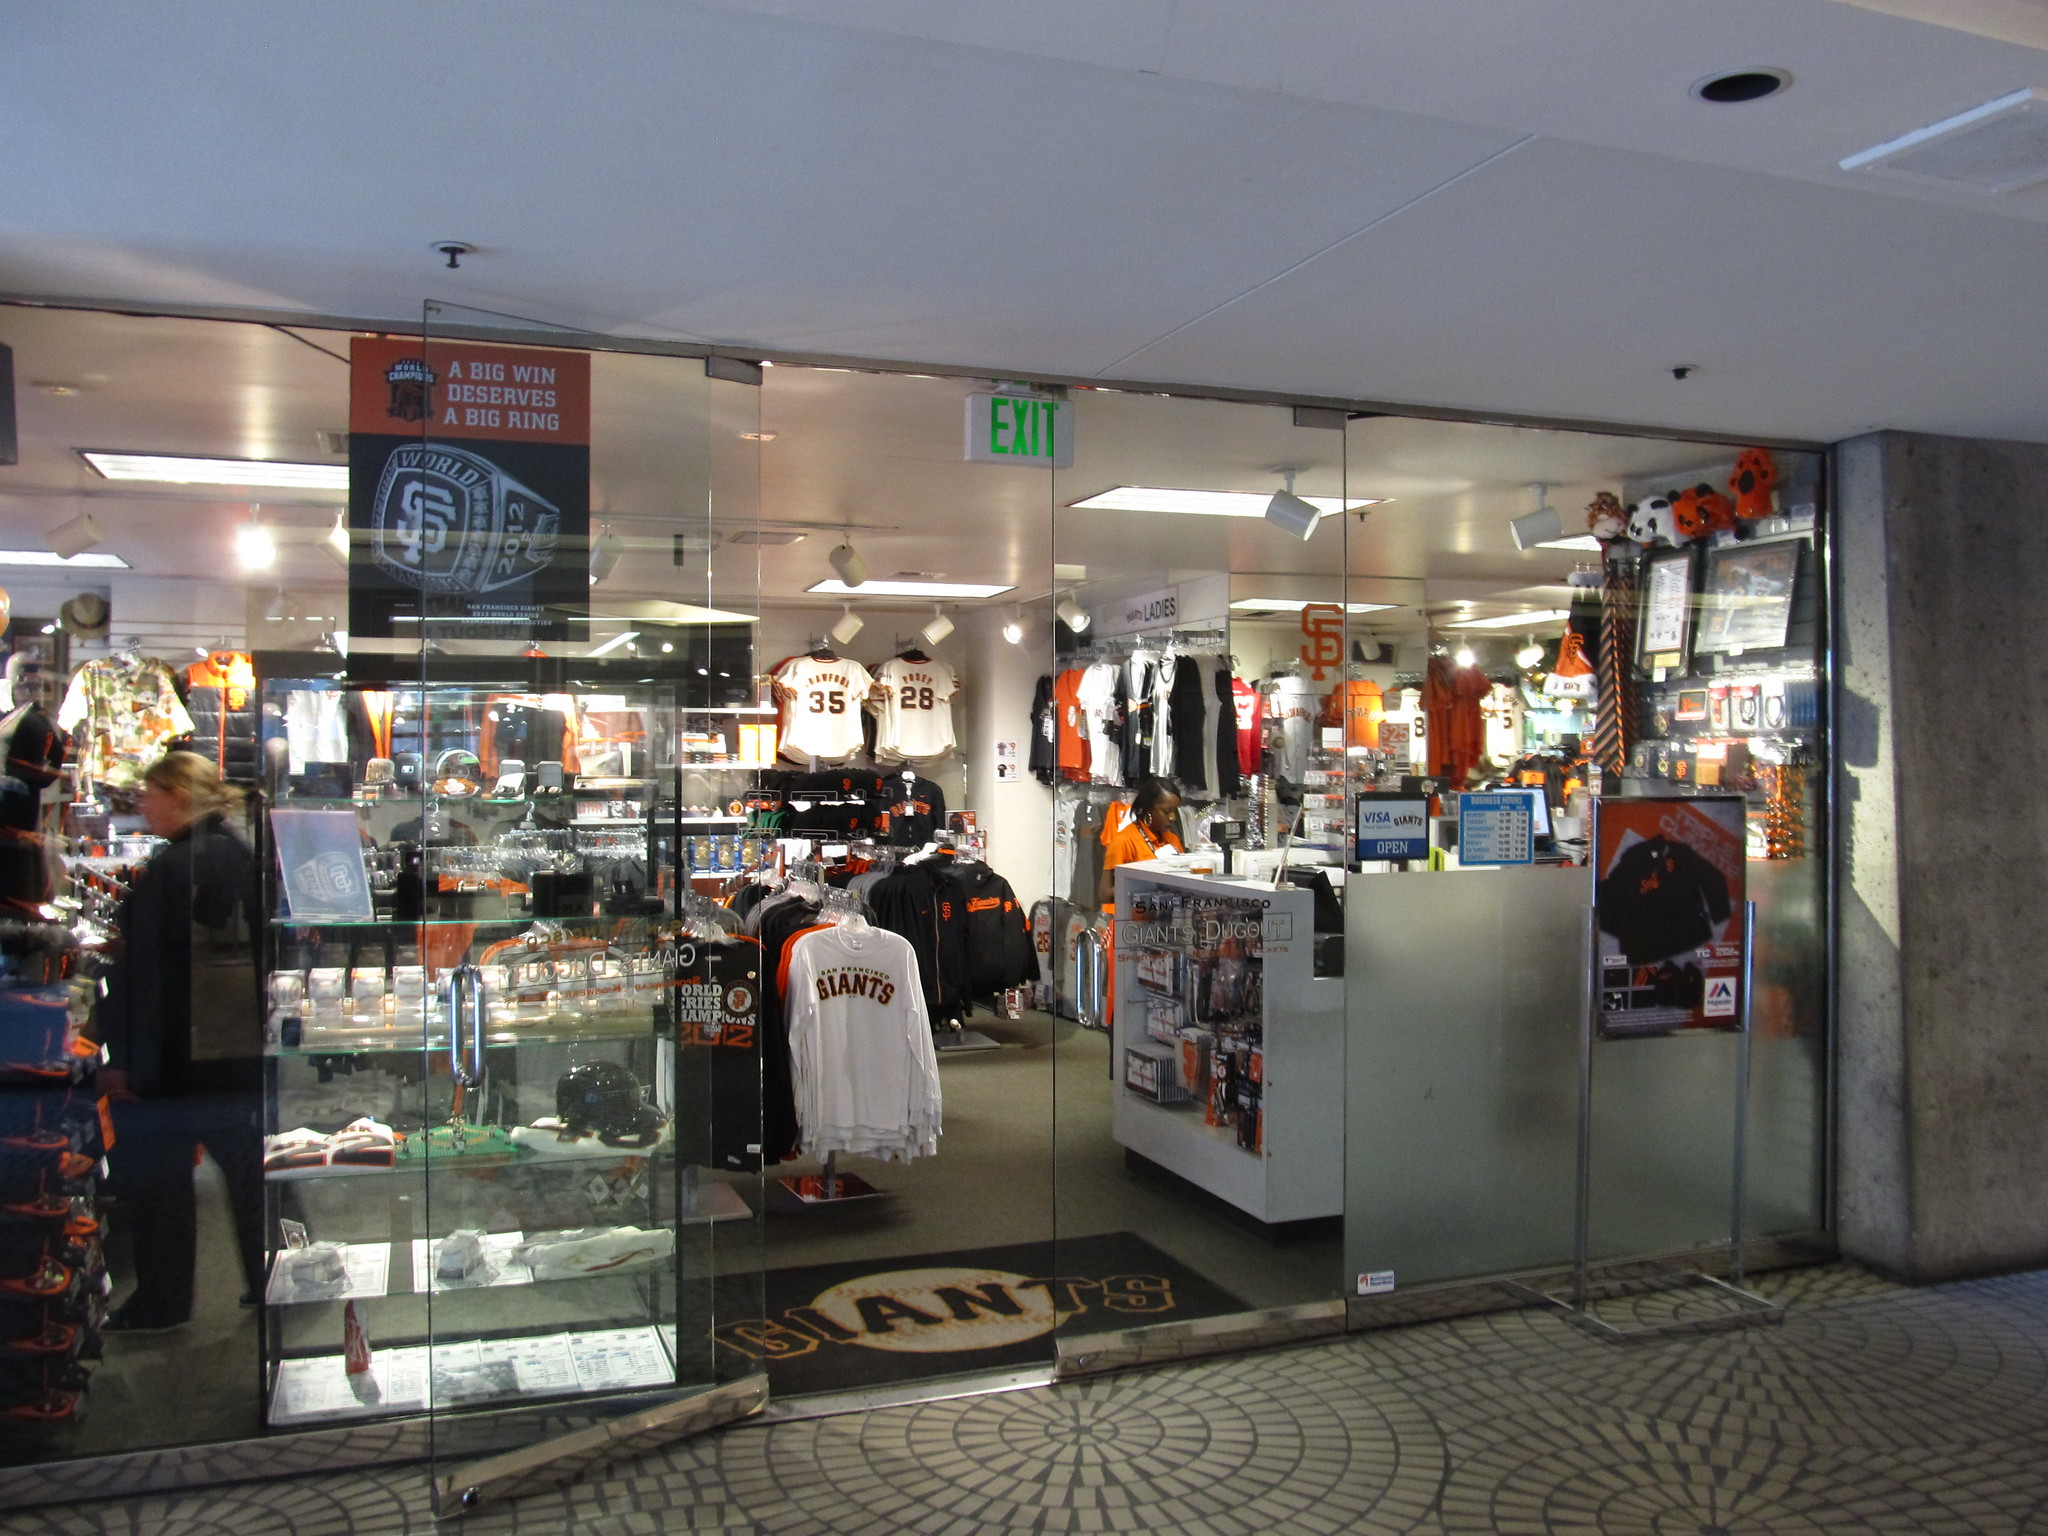 The Giants Dugout Store at the Embarcadero Center - photo by Ken Lund under CC BY-SA 2.0